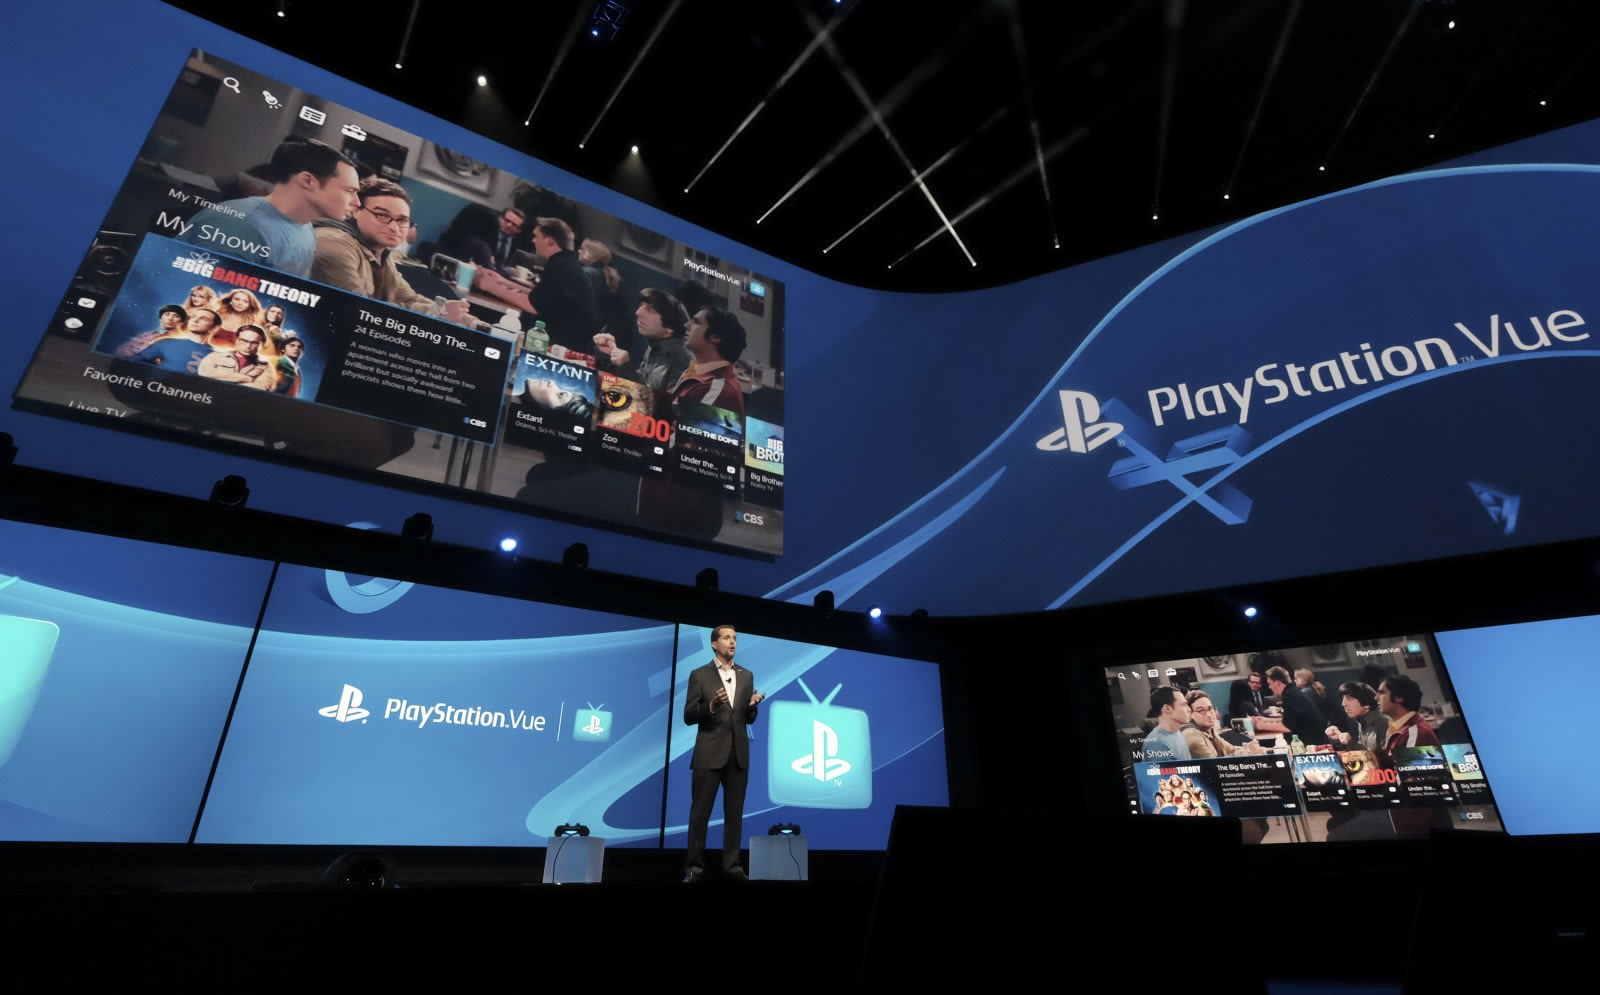 Playstation Vue Review 2020.Sony Will Shut Down Playstation Vue In January 2020 Engadget